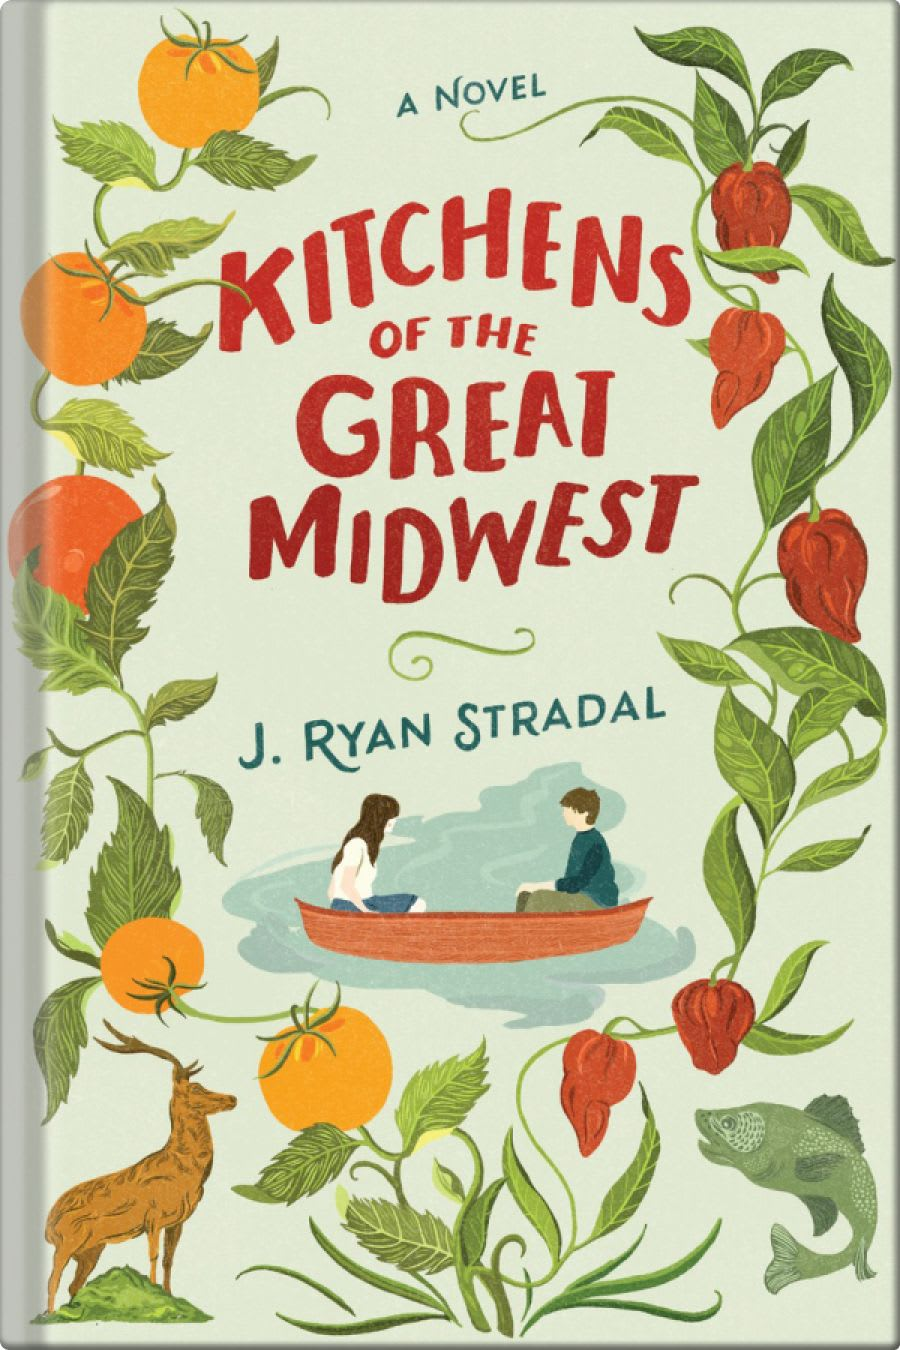 Photo of the book Kitchens of the Great Midwest